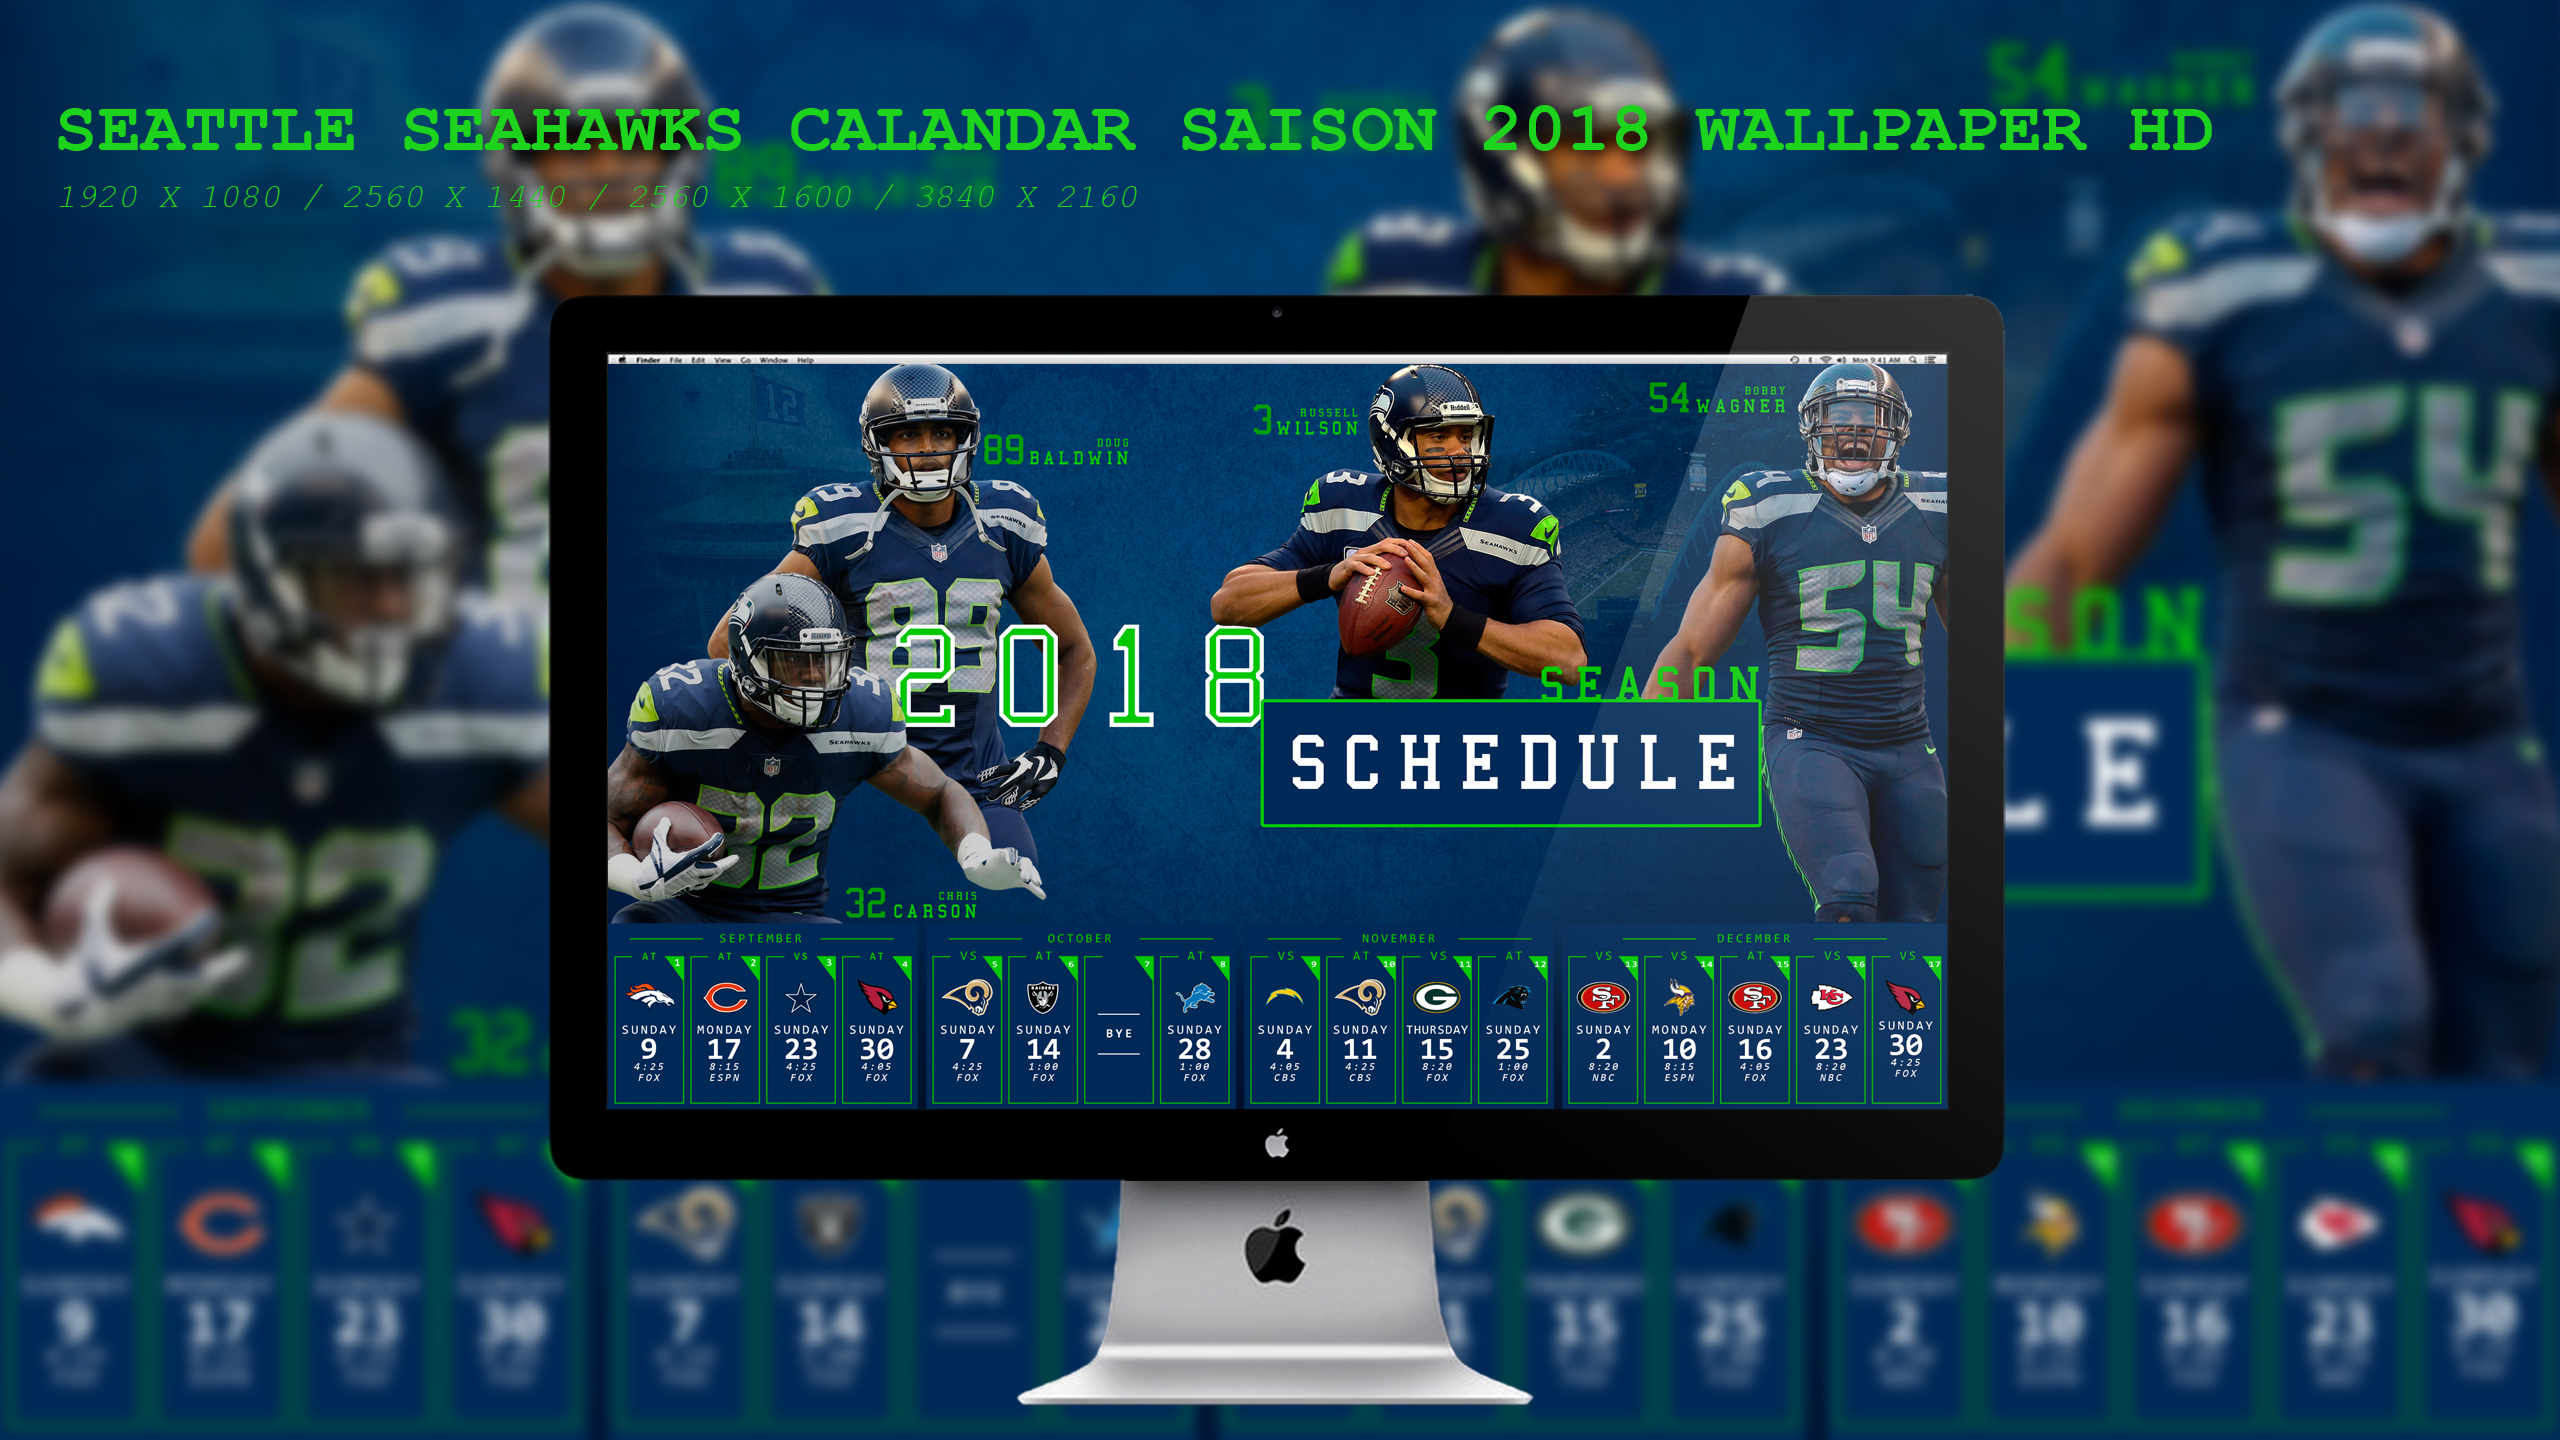 Seattle Seahawks Calandar Saison 2018 Wallpaper HD